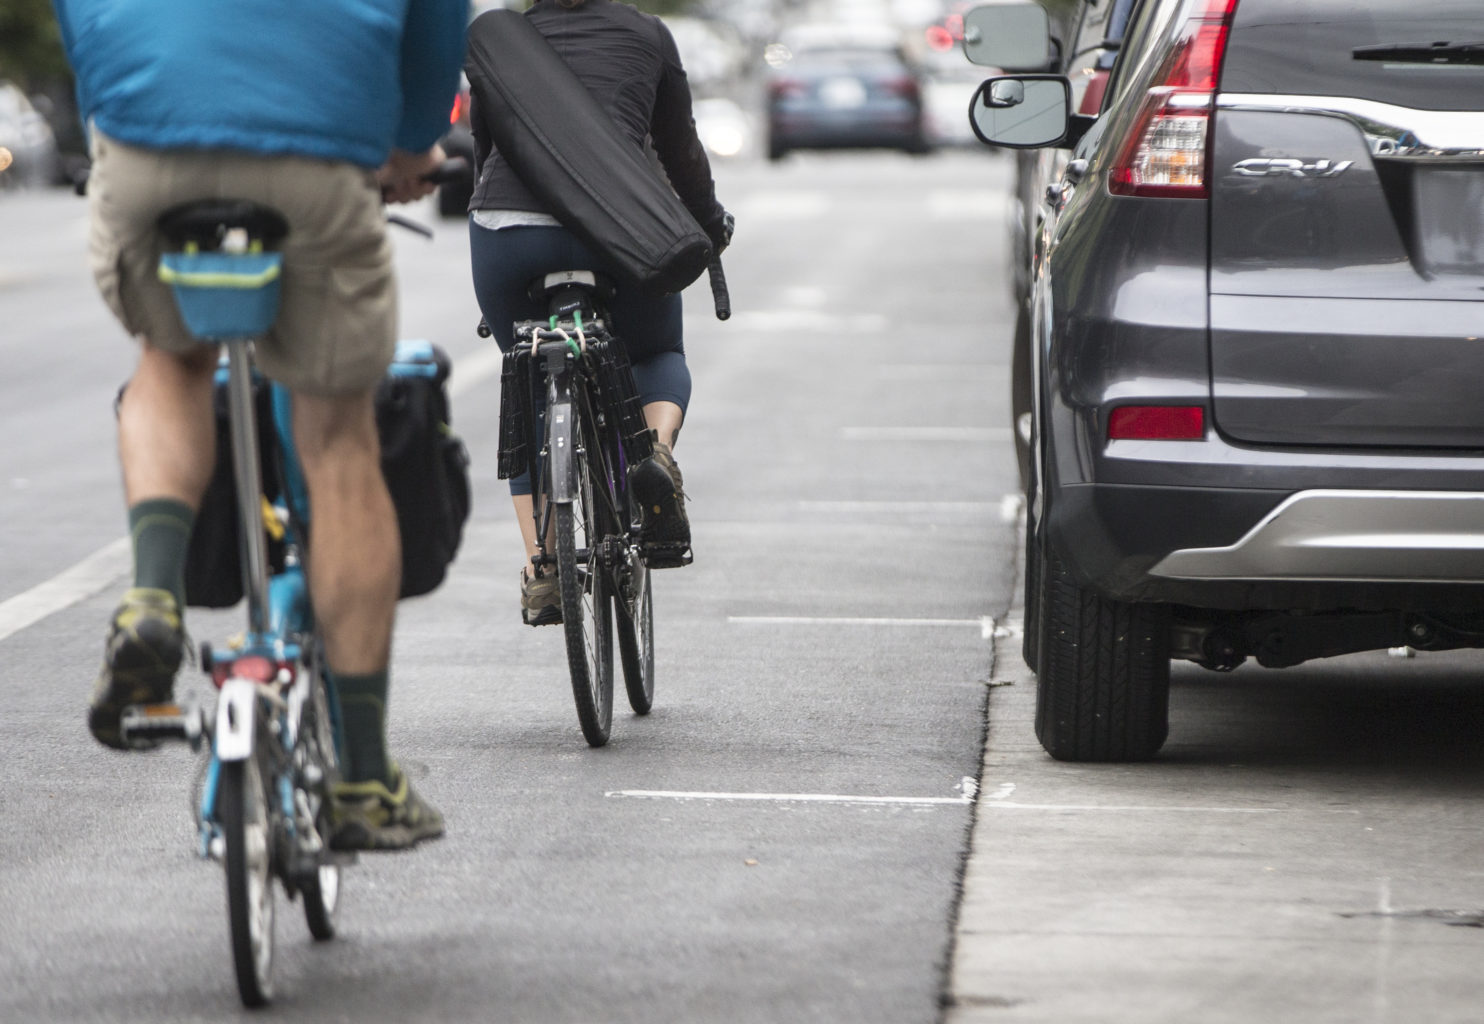 Protected bike lanes will be installed on Valencia Street between Market and 15th streets. (Jessica Christian/S.F. Examiner)